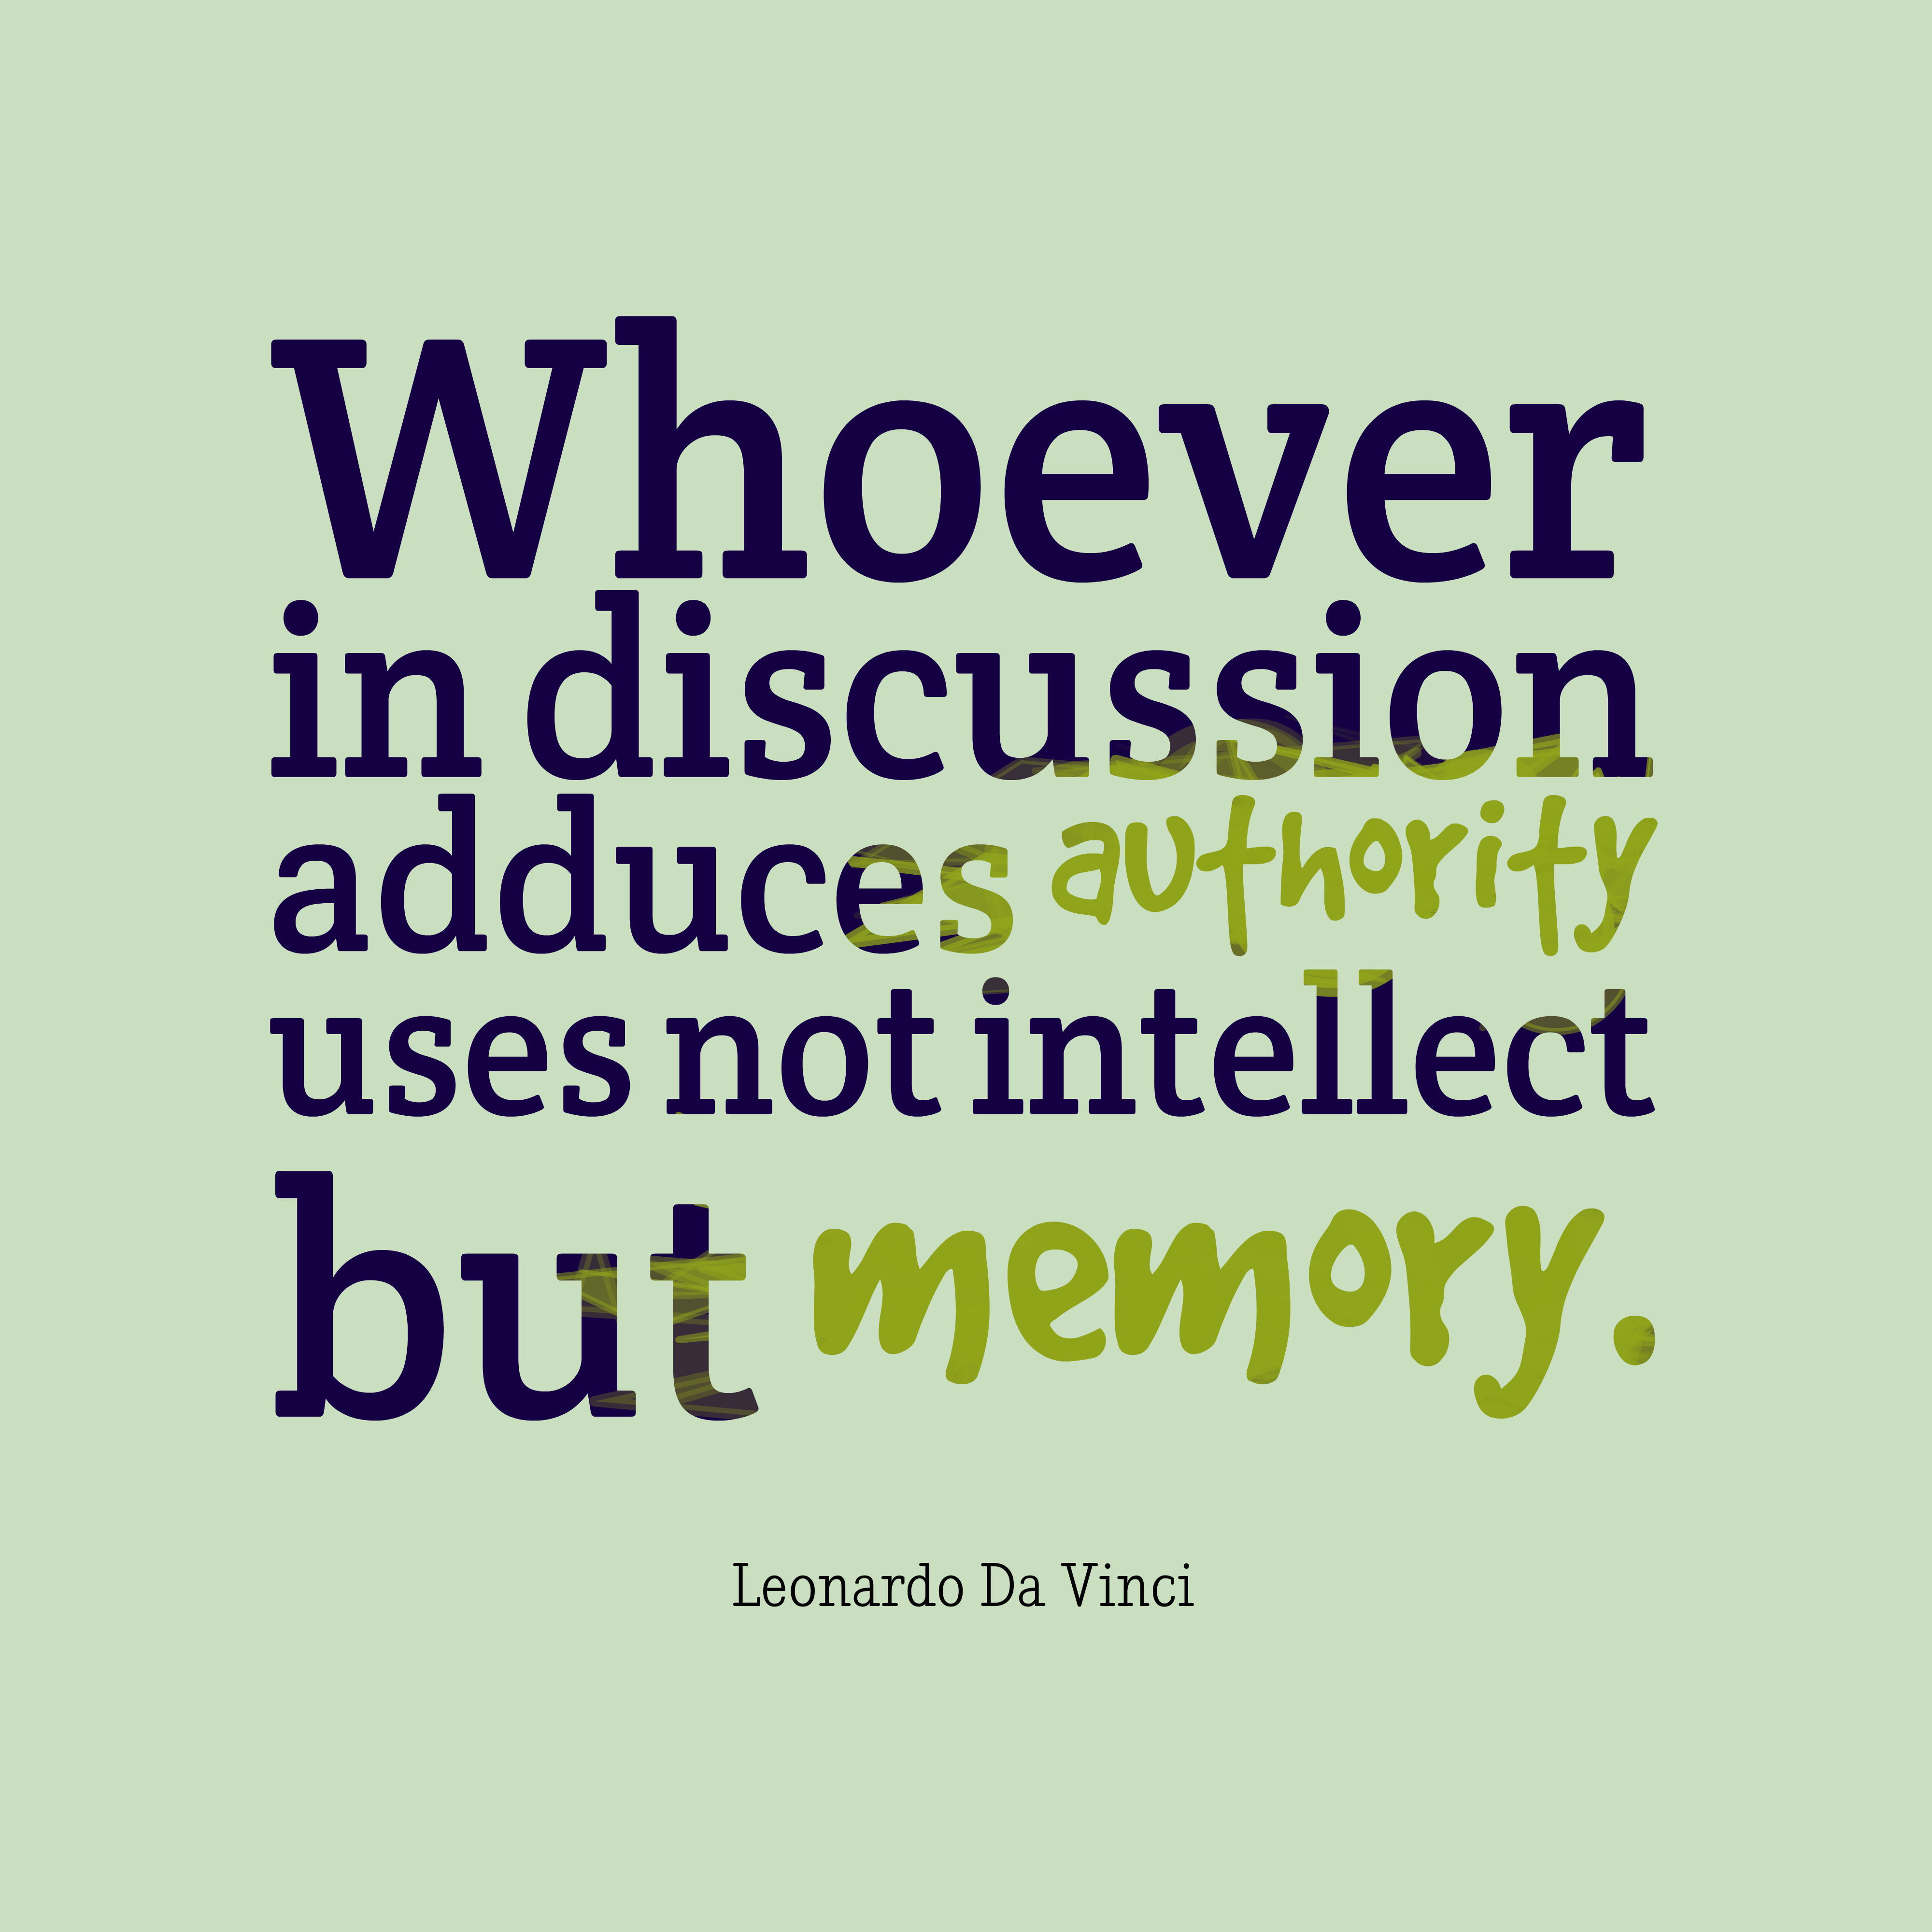 Quotes image of Whoever in discussion adduces authority uses not intellect but memory.